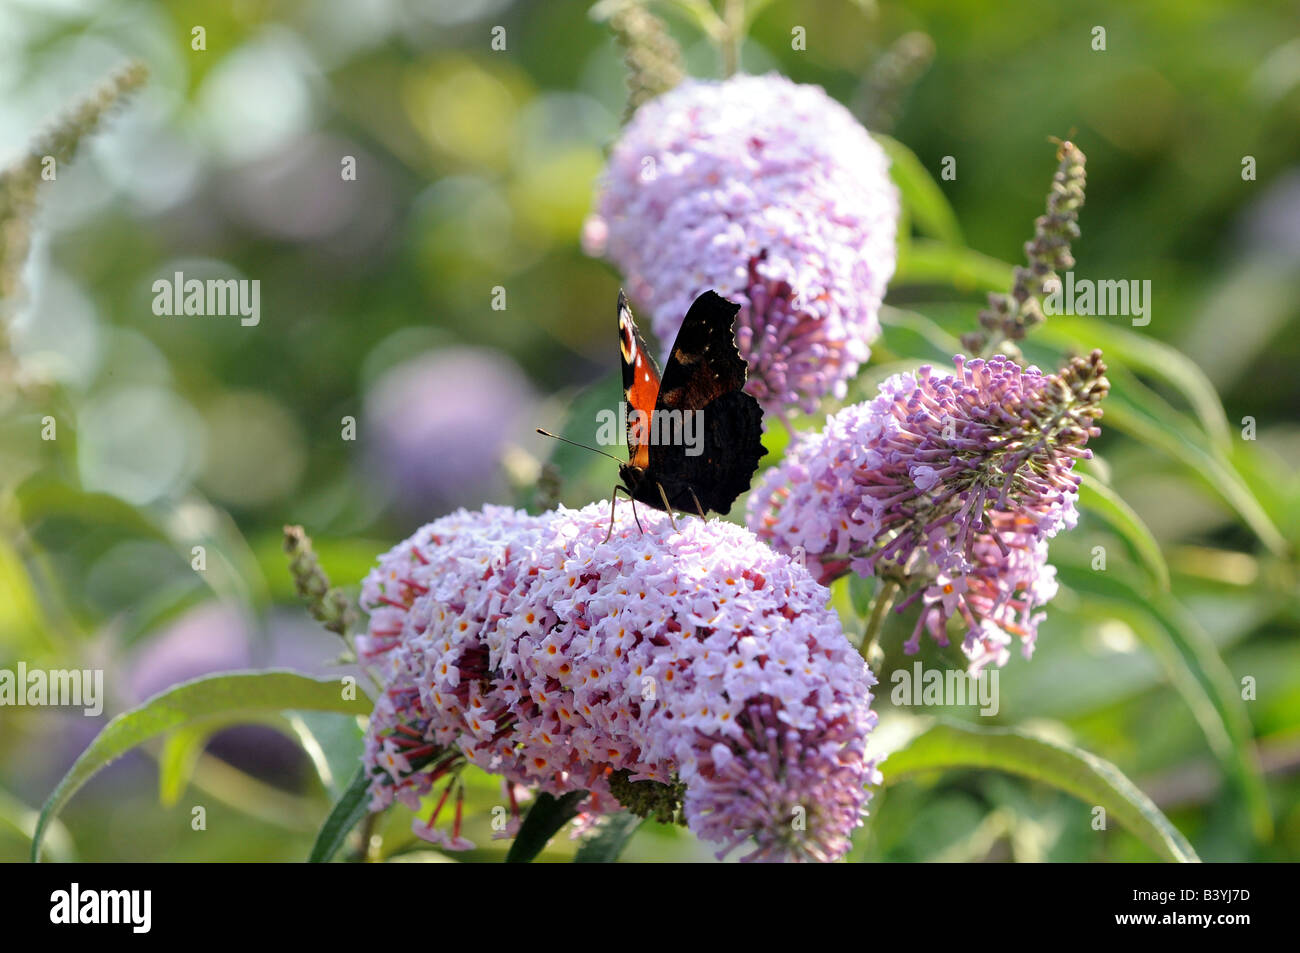 A peacock butterfly on Buddleia - Stock Image